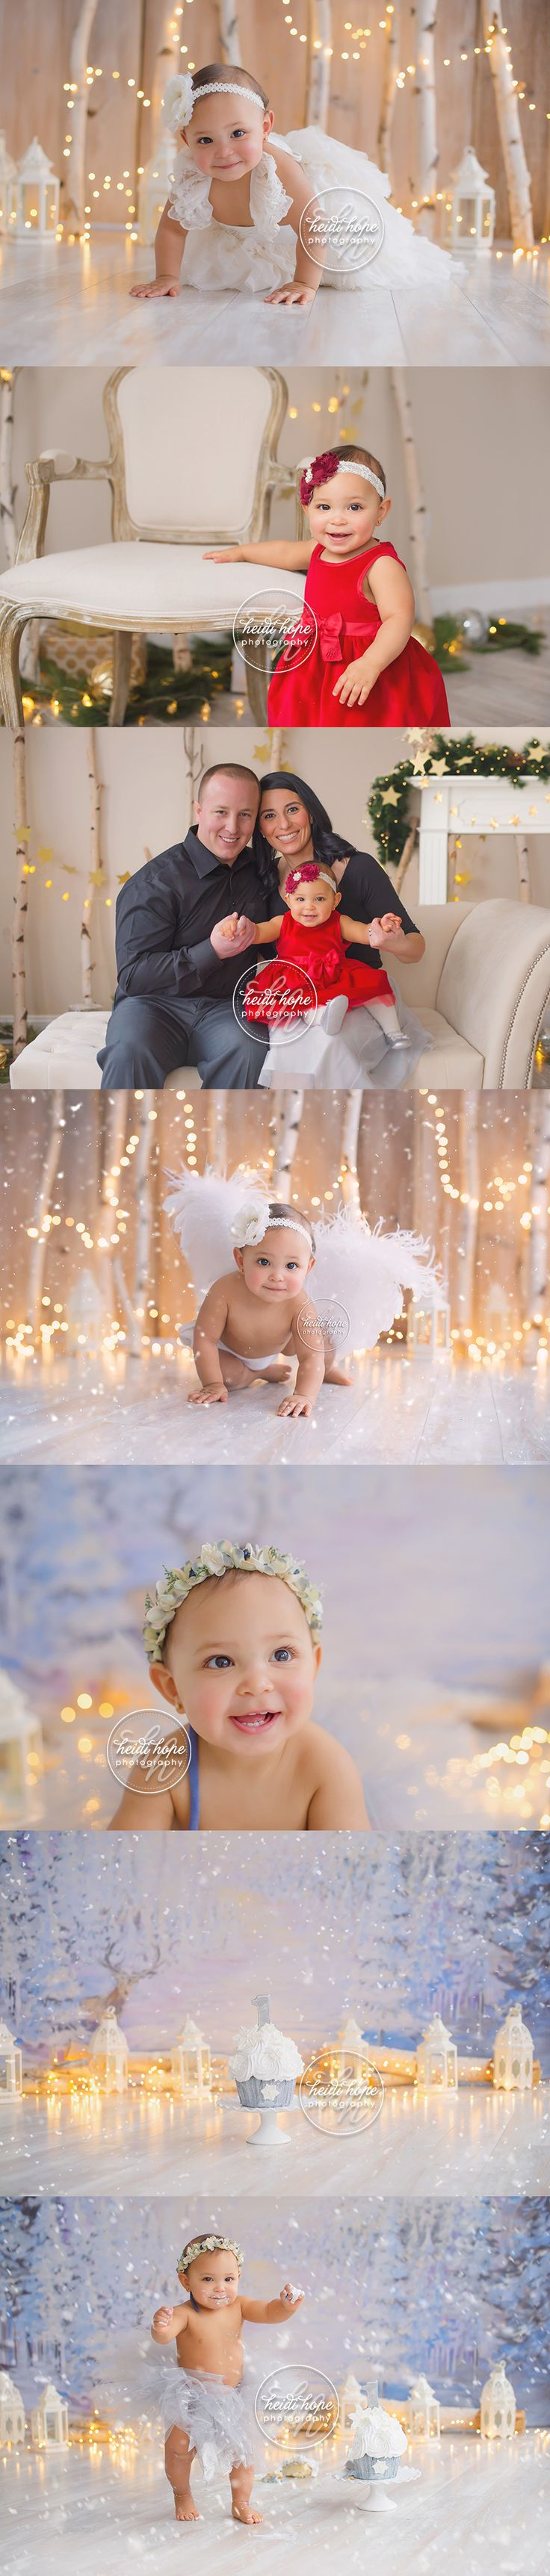 A winter wonderland cakesmash and Holiday portrait sneak peek! | Heidi Hope Photography